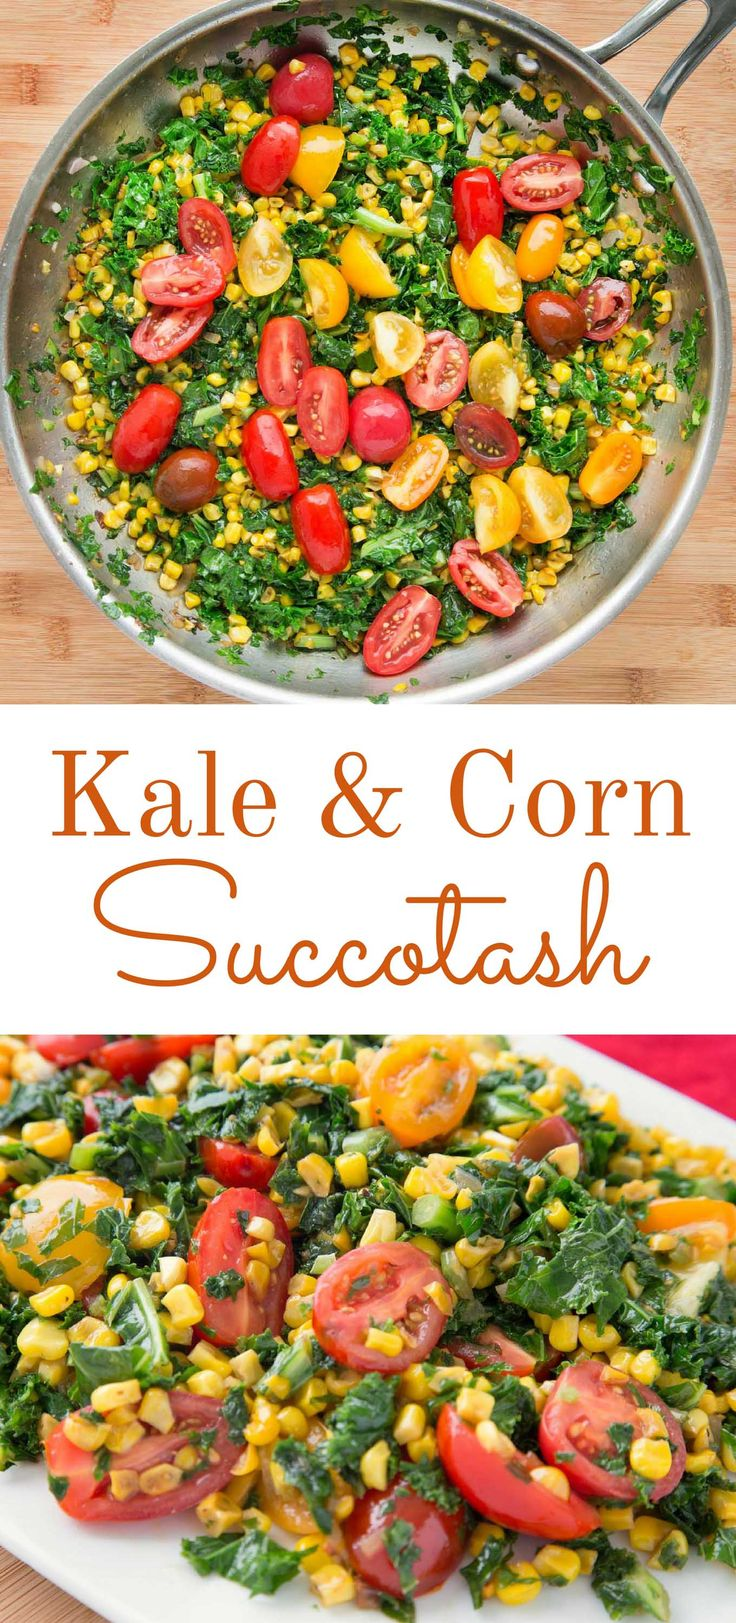 Kale and Corn Succotash recipe- a delicious vegetable side dish for your next dinner